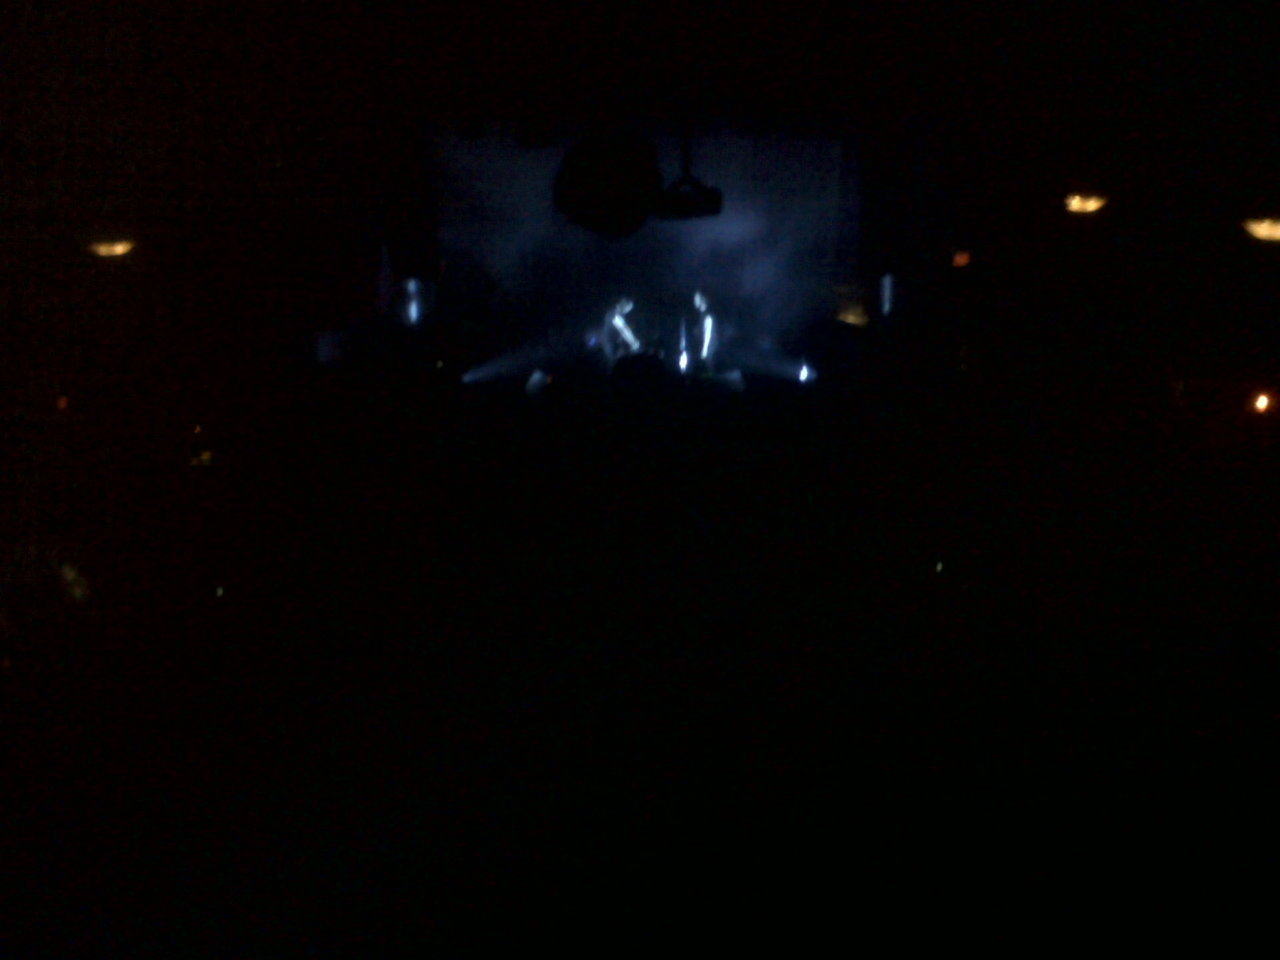 My life right now. The xx concert.